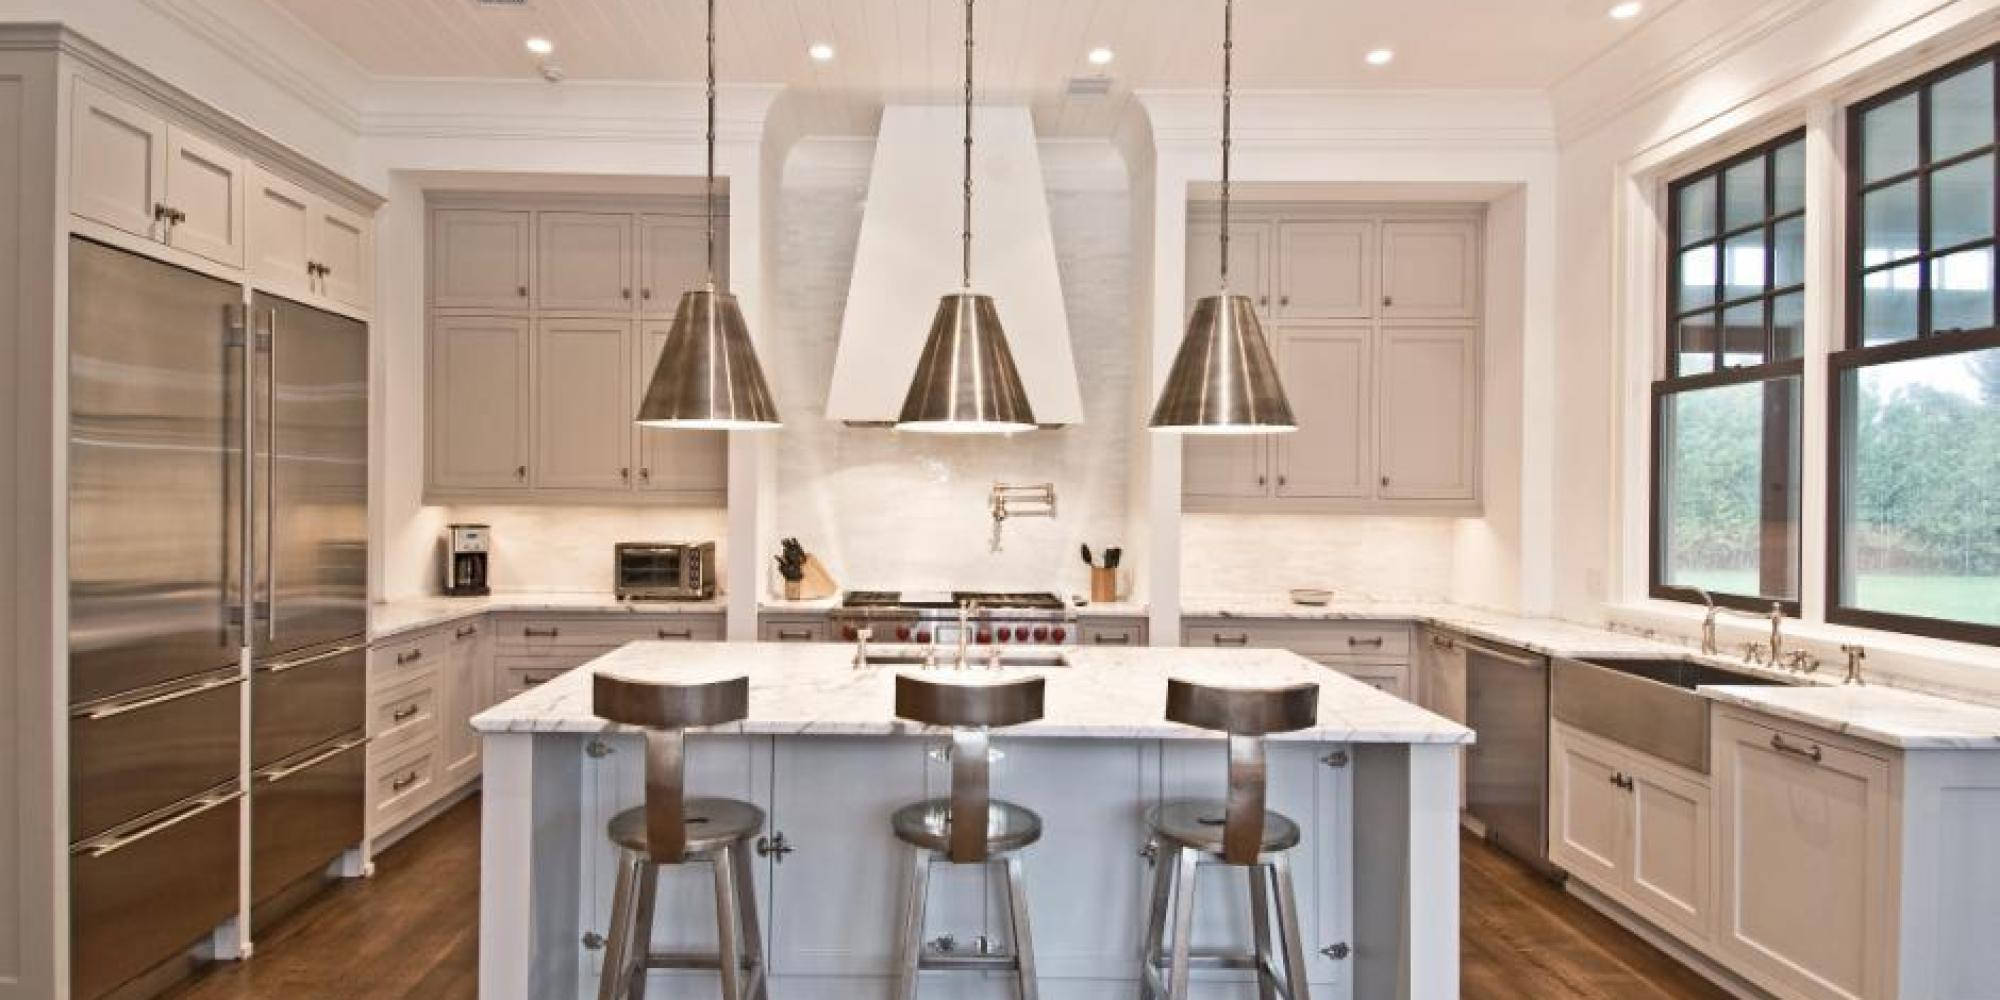 Painting Kitchen Walls the best paint colors for every type of kitchen | huffpost